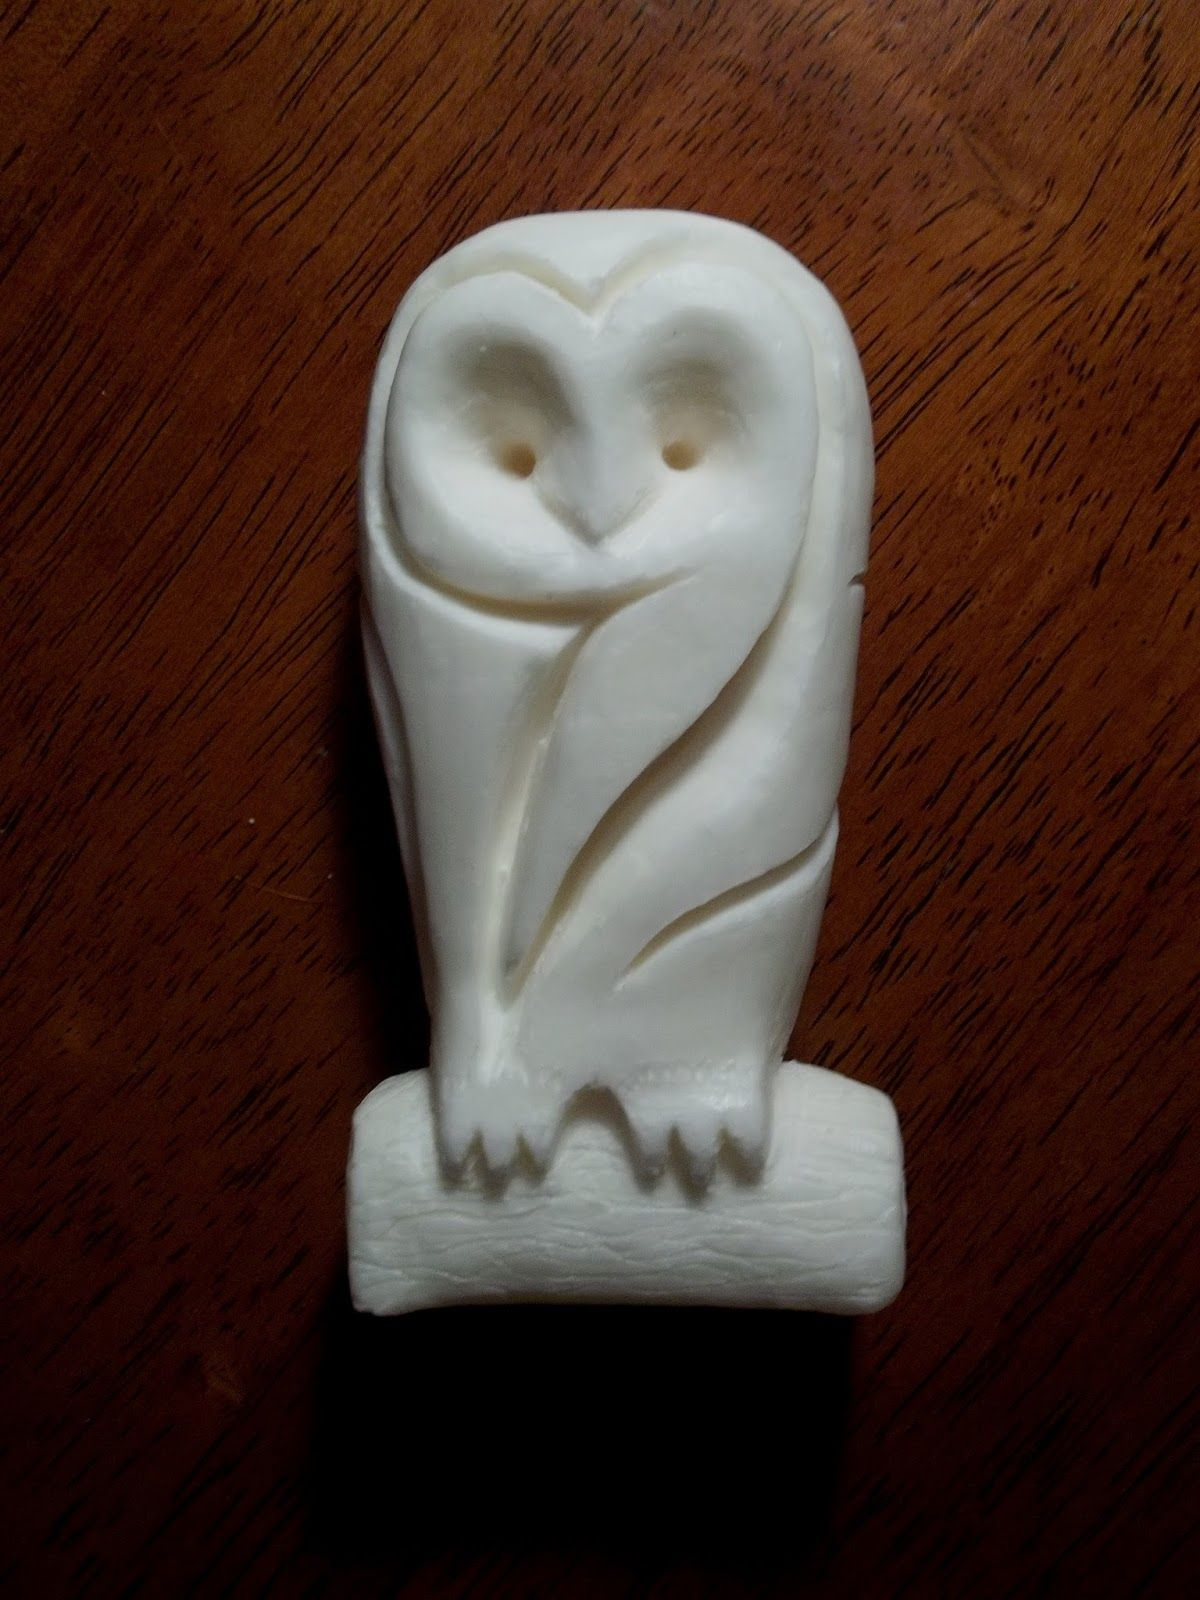 Pin by lindsey pearce on art 1 stuff soap carving patterns